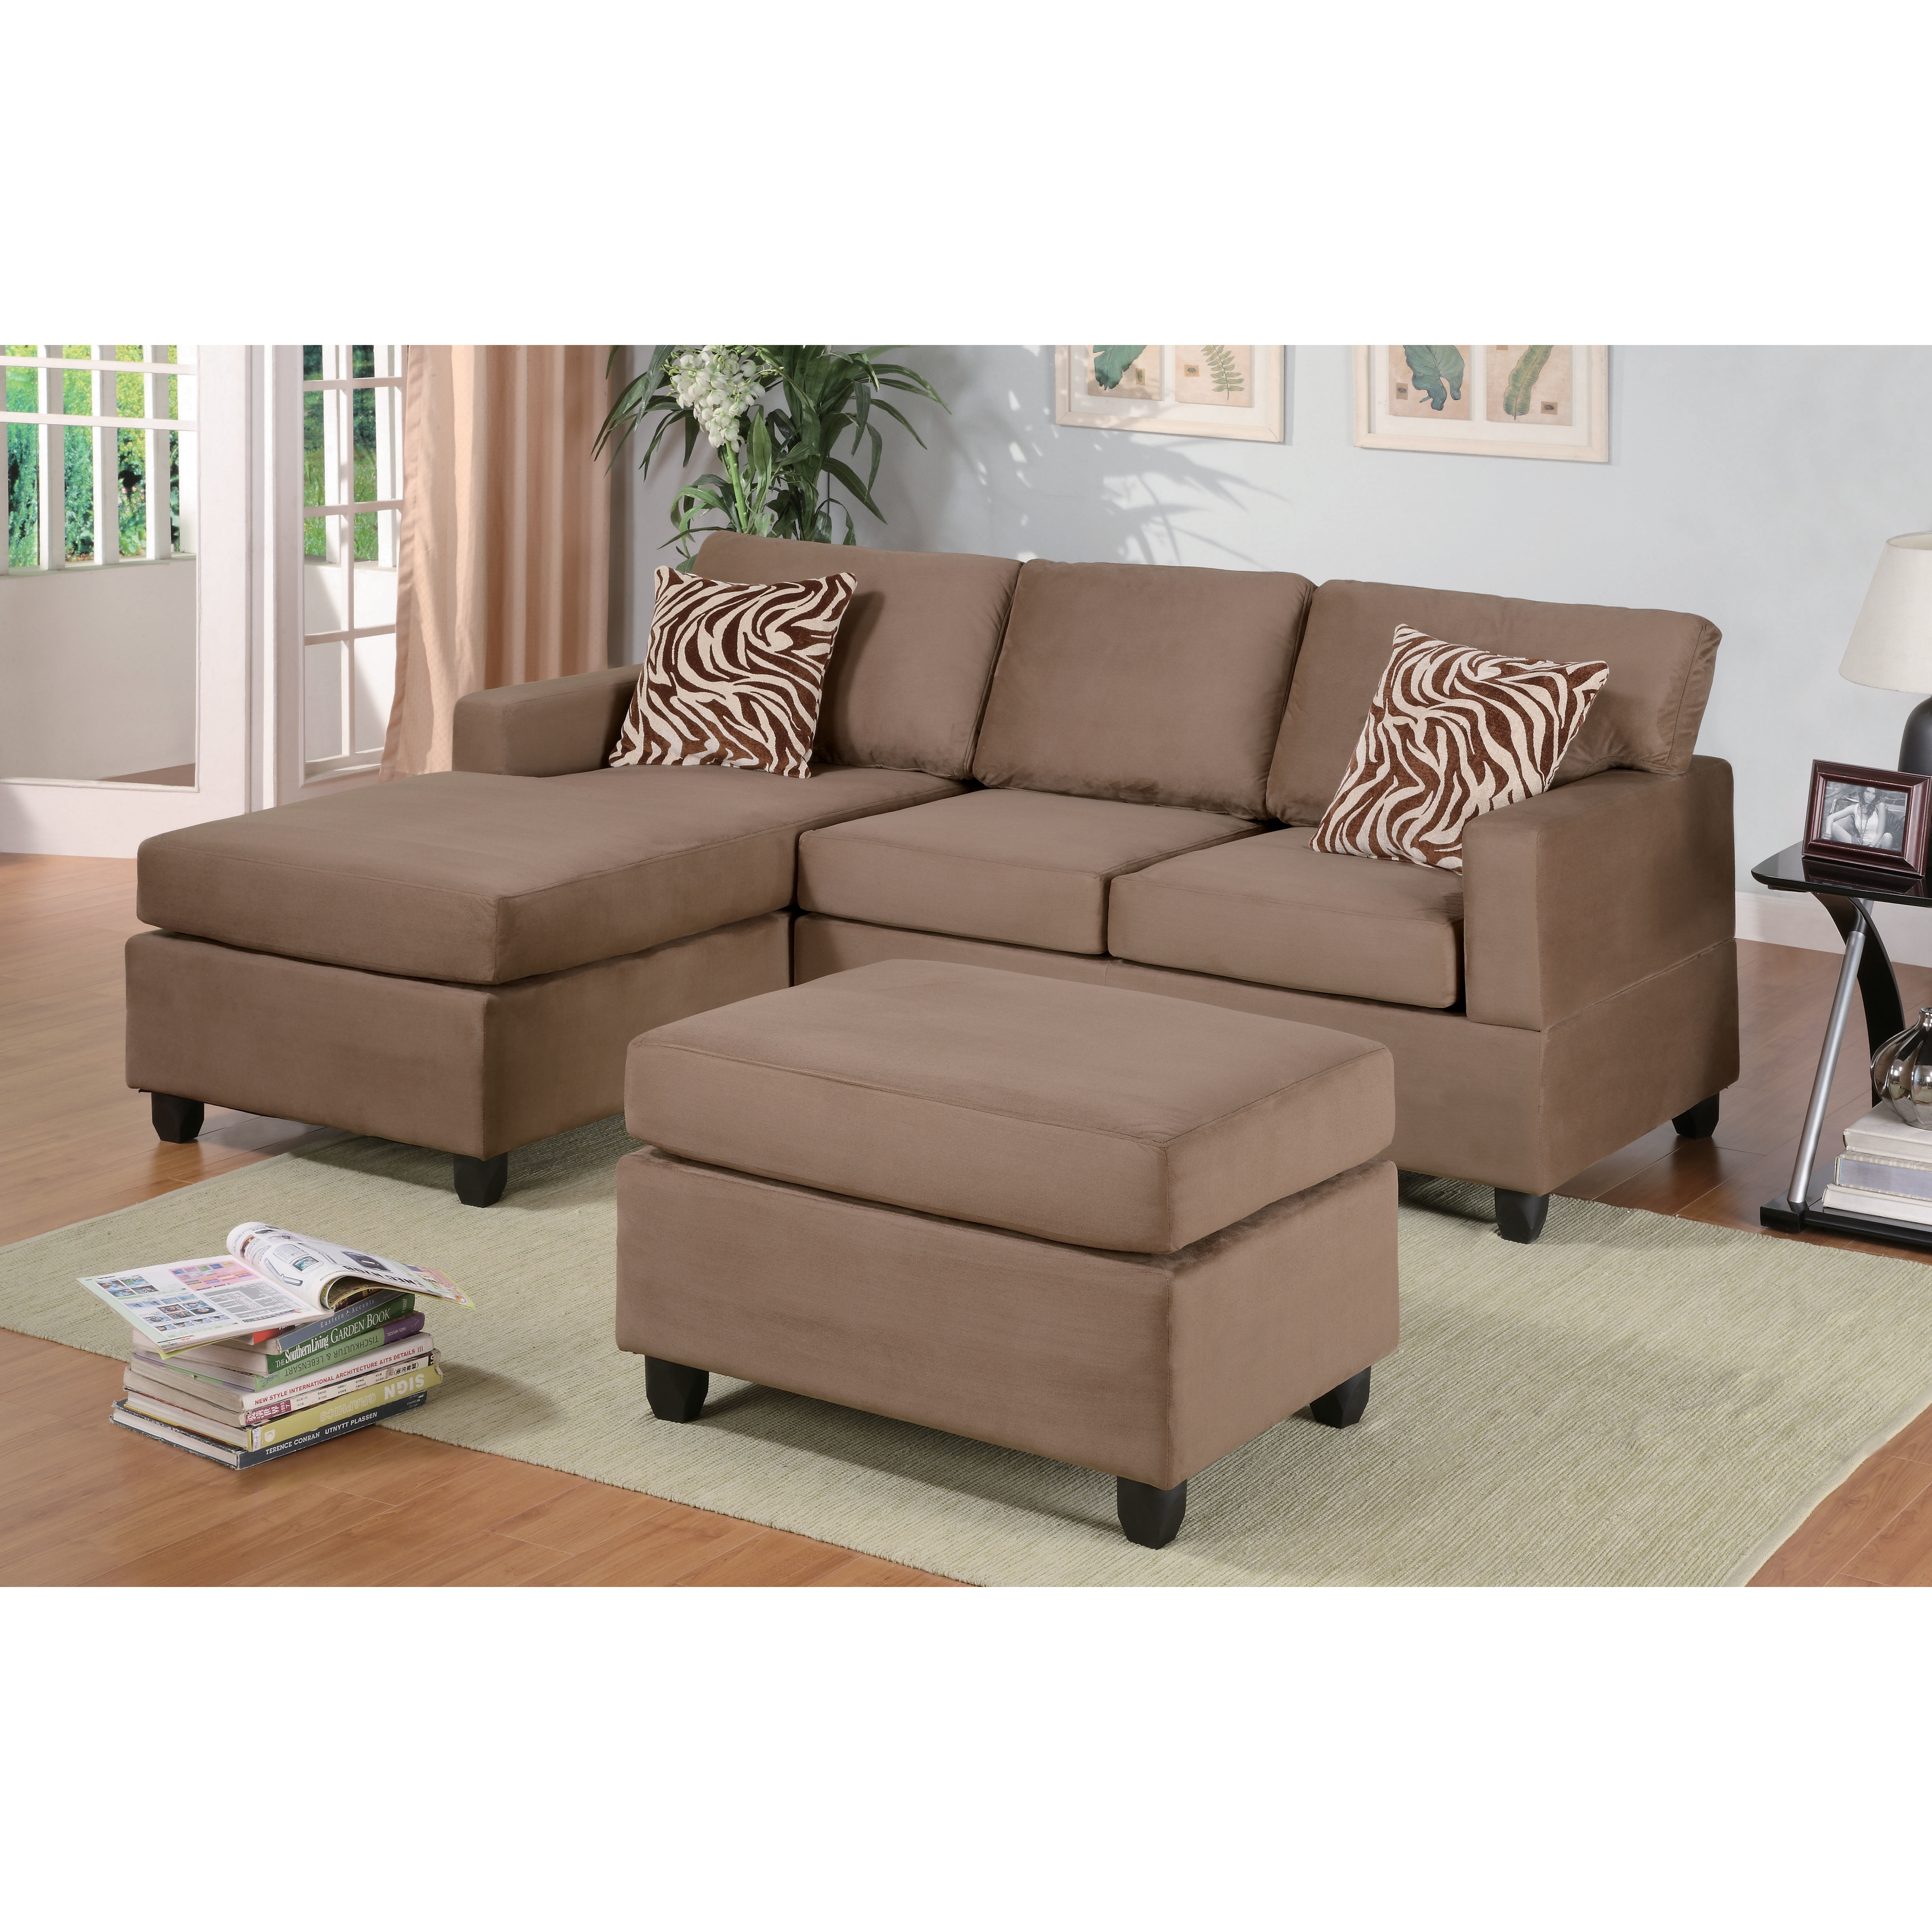 Fresh Microfiber Sectional Sofa With Chaise 75 In Office Sofa Ideas with Microfiber Sectional Sofa With Chaise